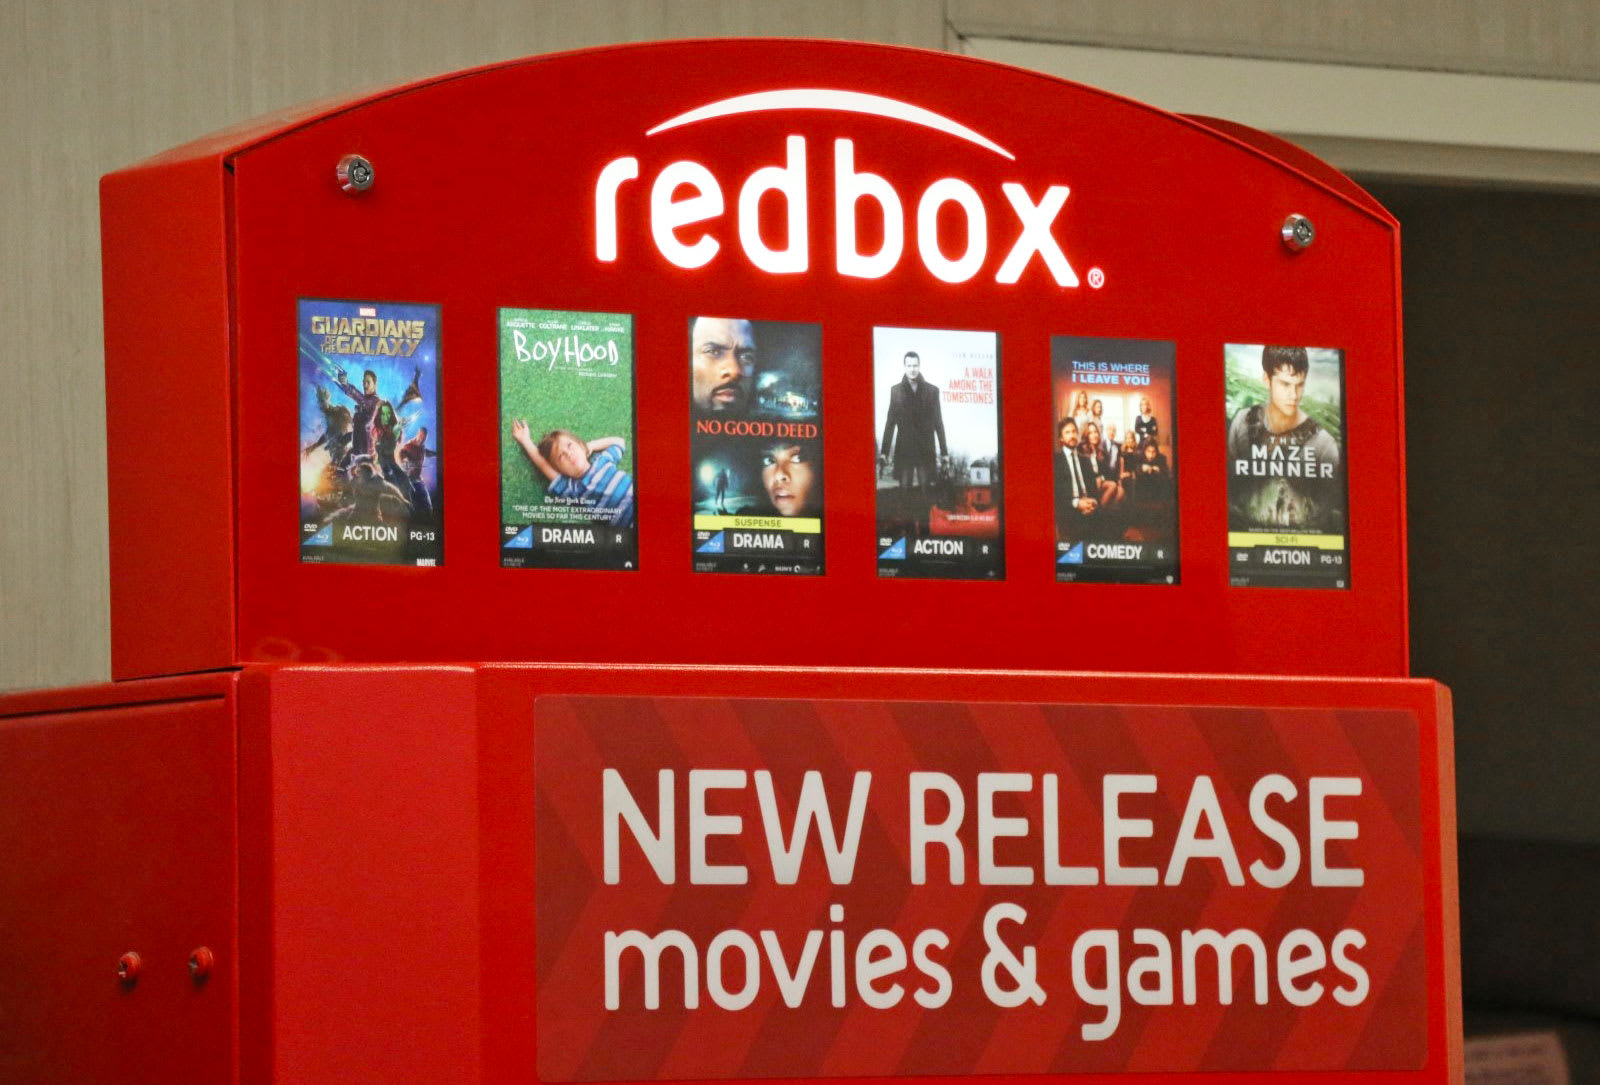 Redbox will rent Warner Bros  films on release day (updated)